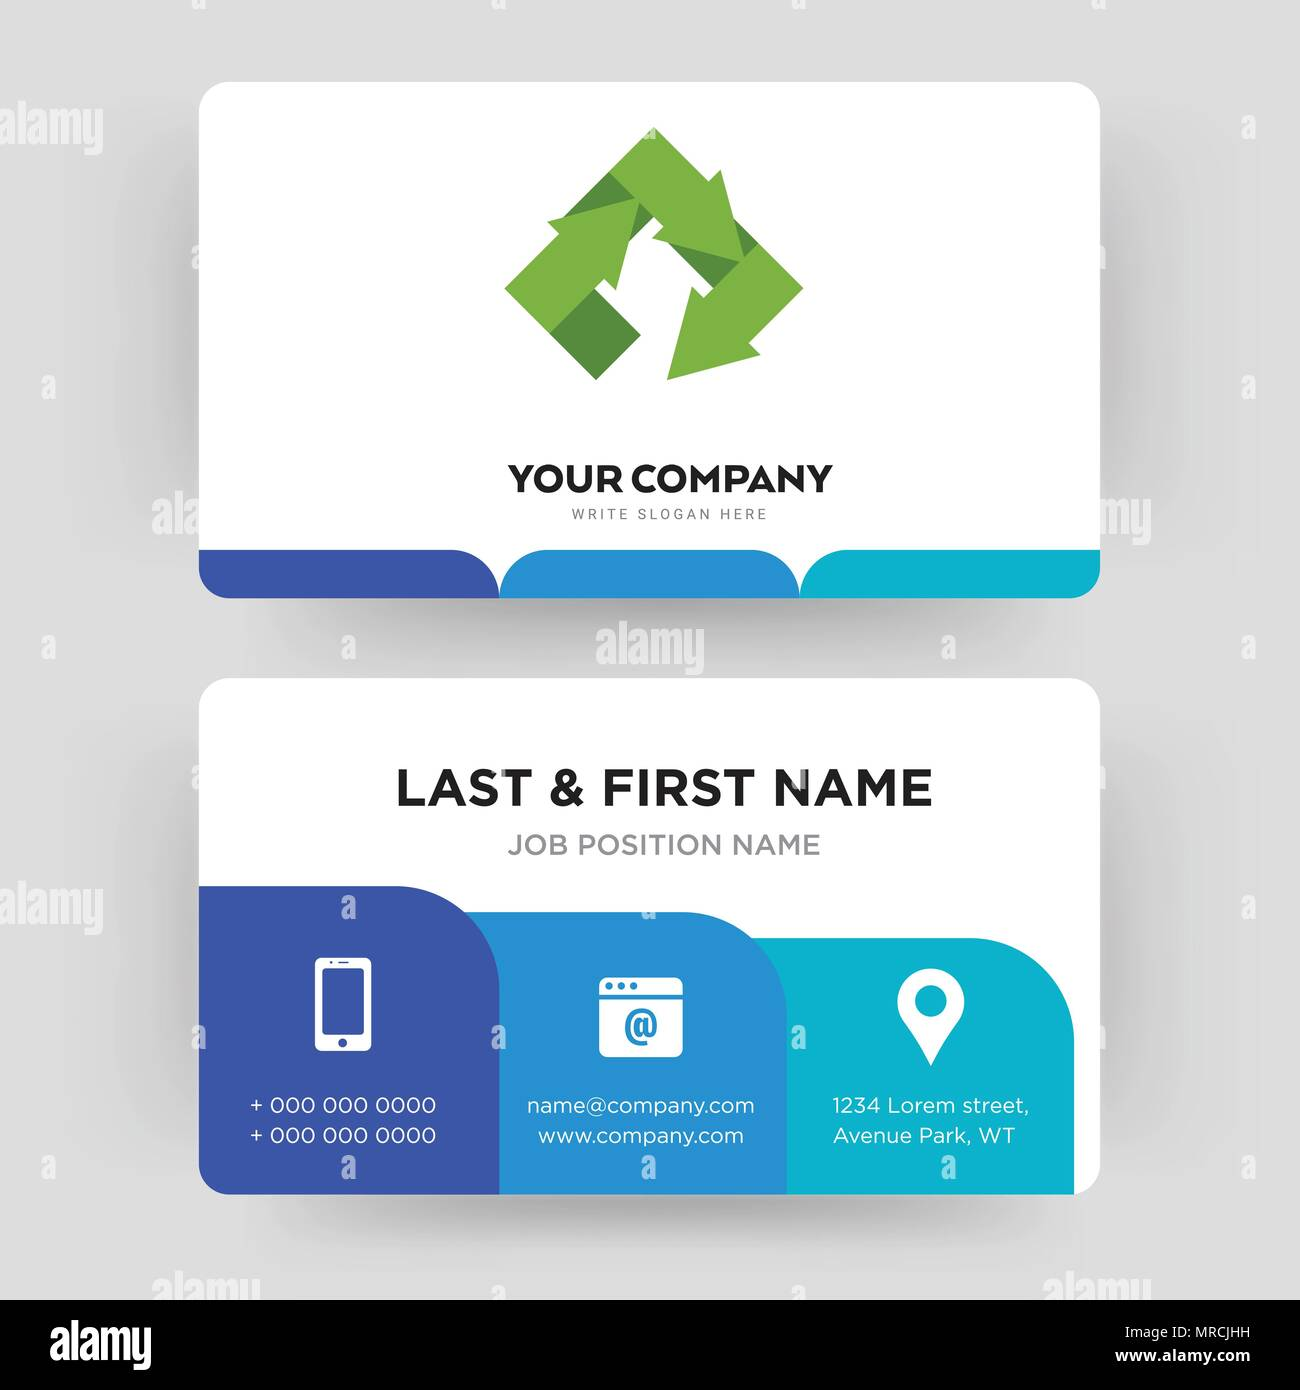 recycle business card design template visiting for your company